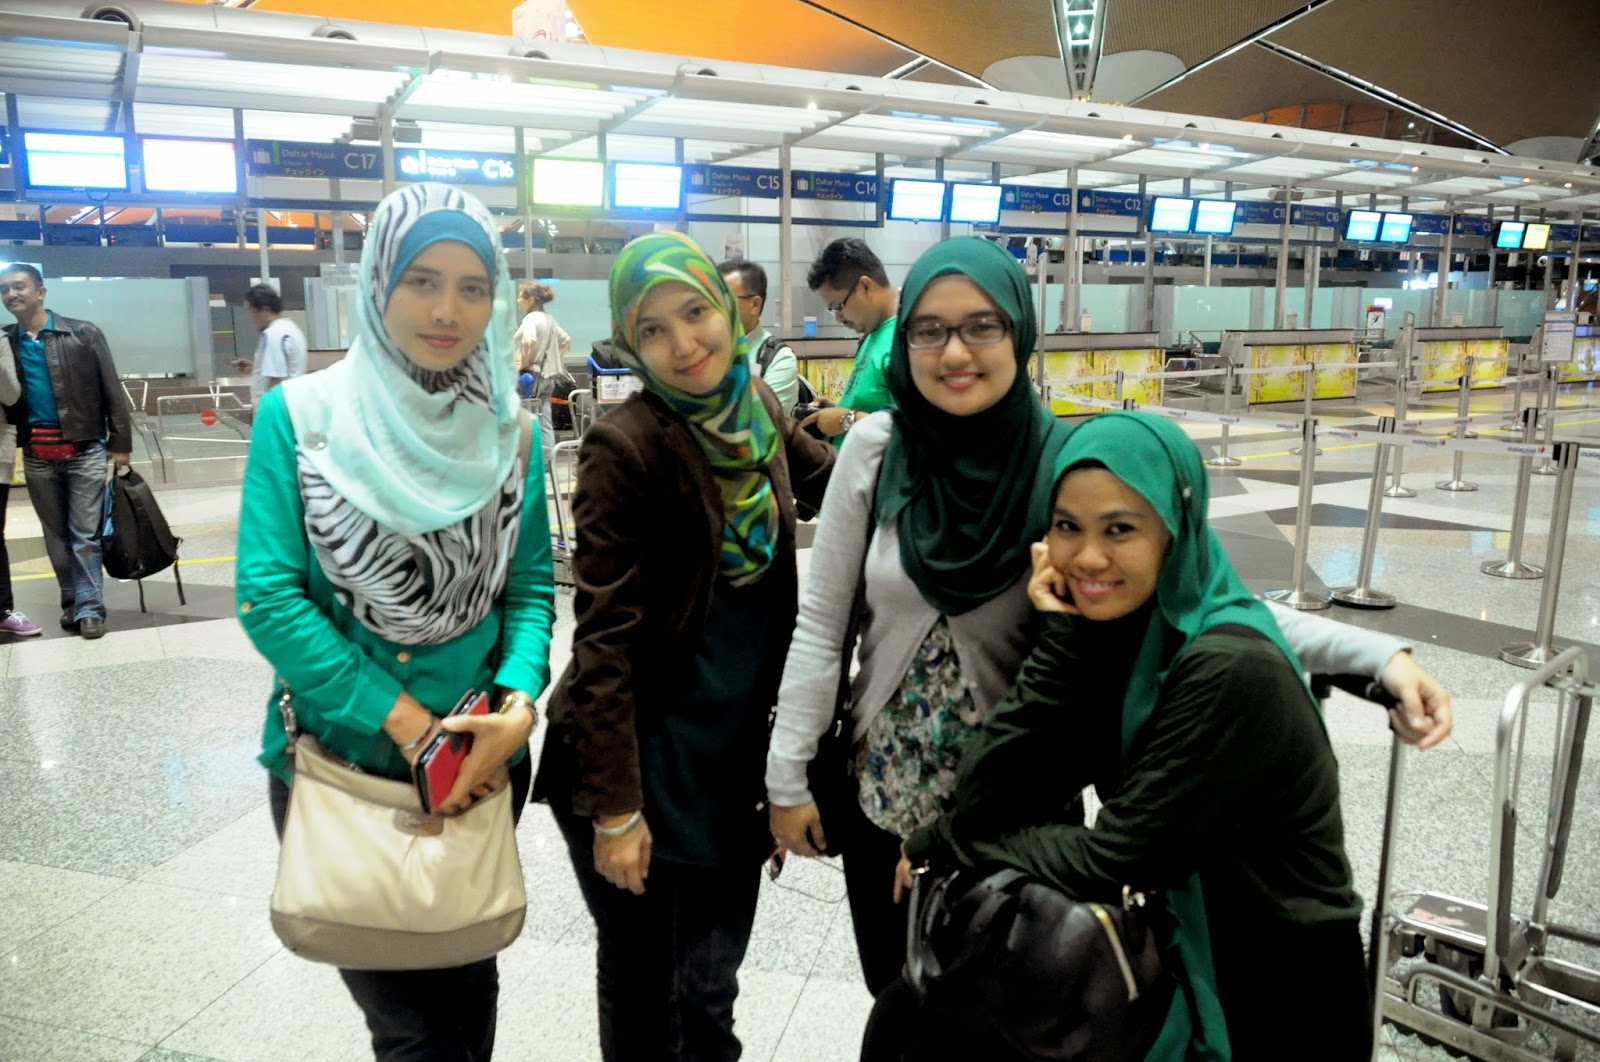 mewith olyn,jun and aini at KLIA before checked in